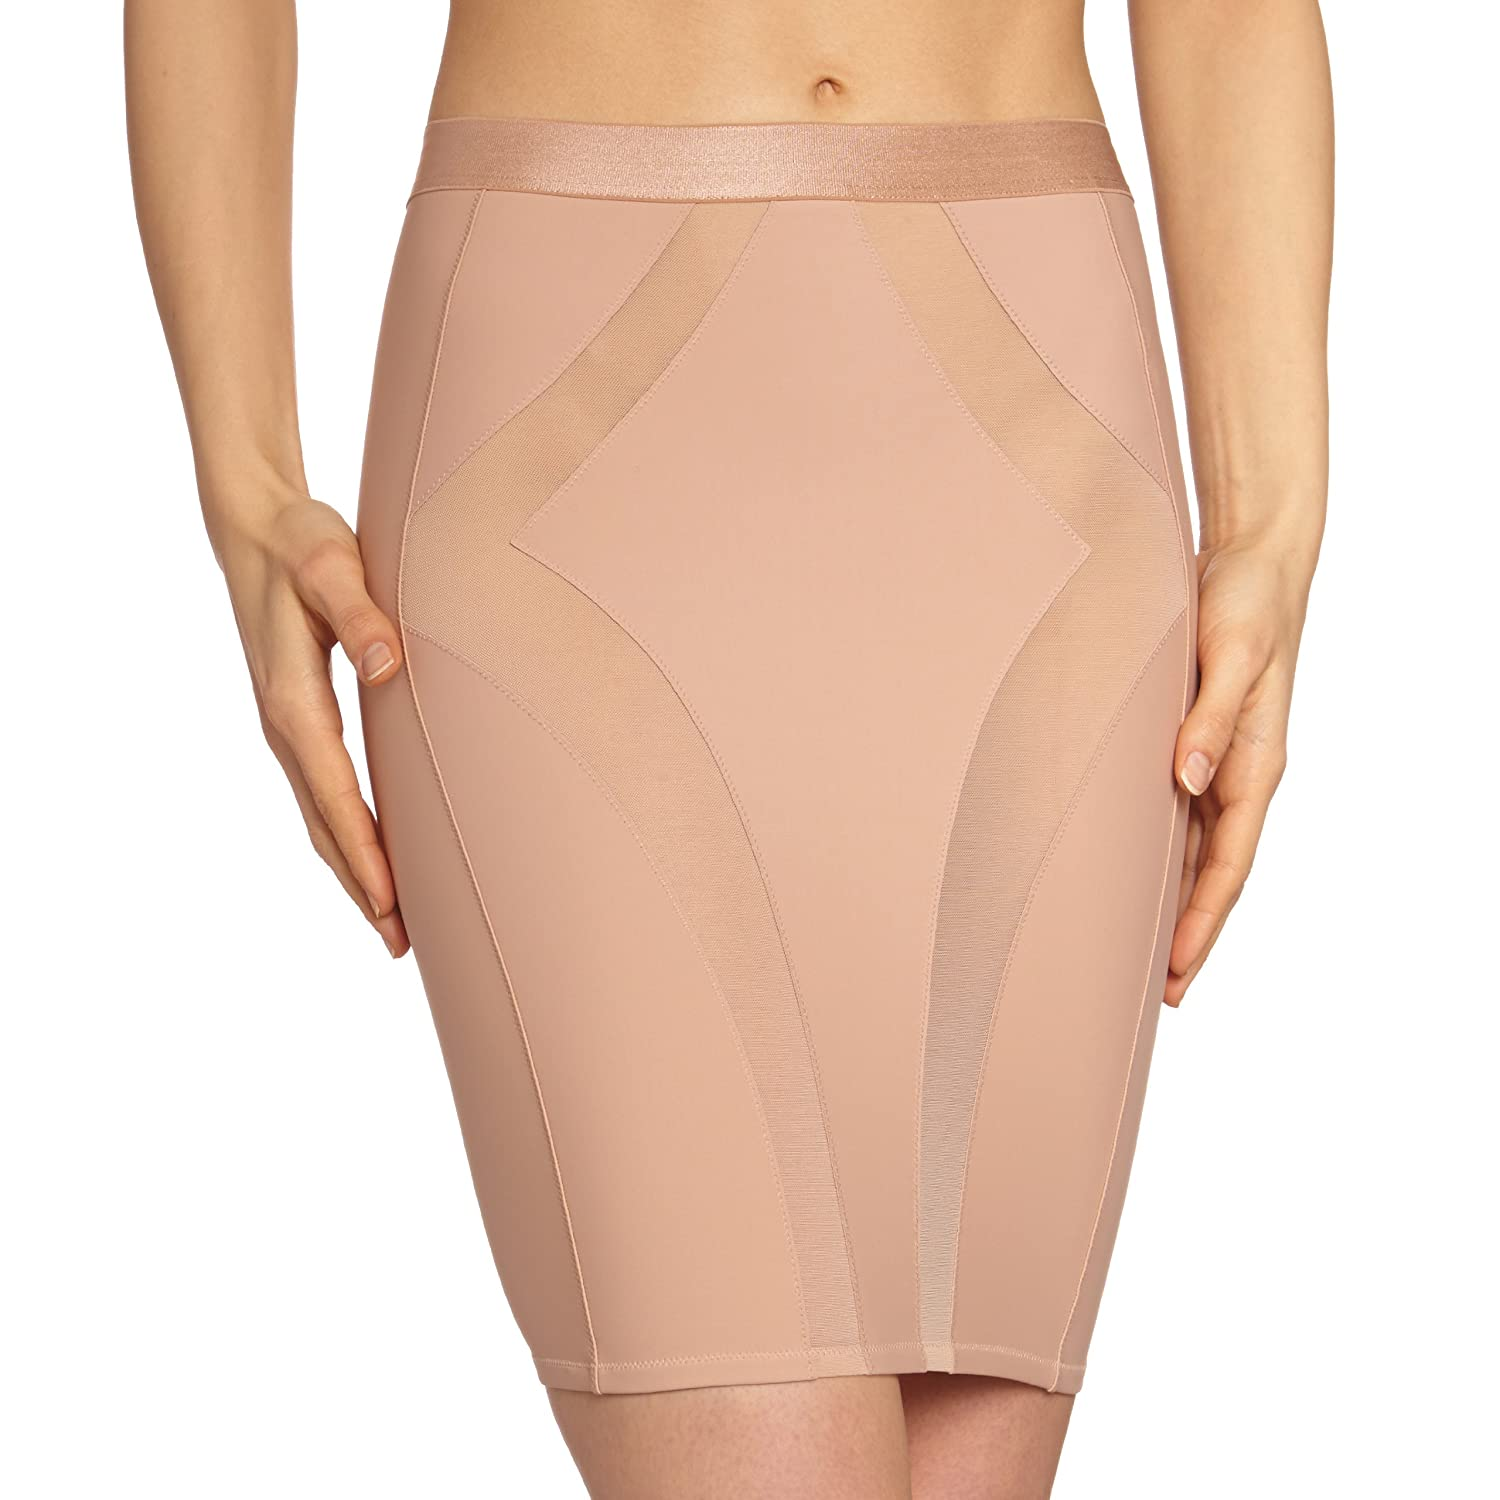 Triumph Damen Rock (knielang) Amazing Sensation Skirt (1ND29) günstig online kaufen